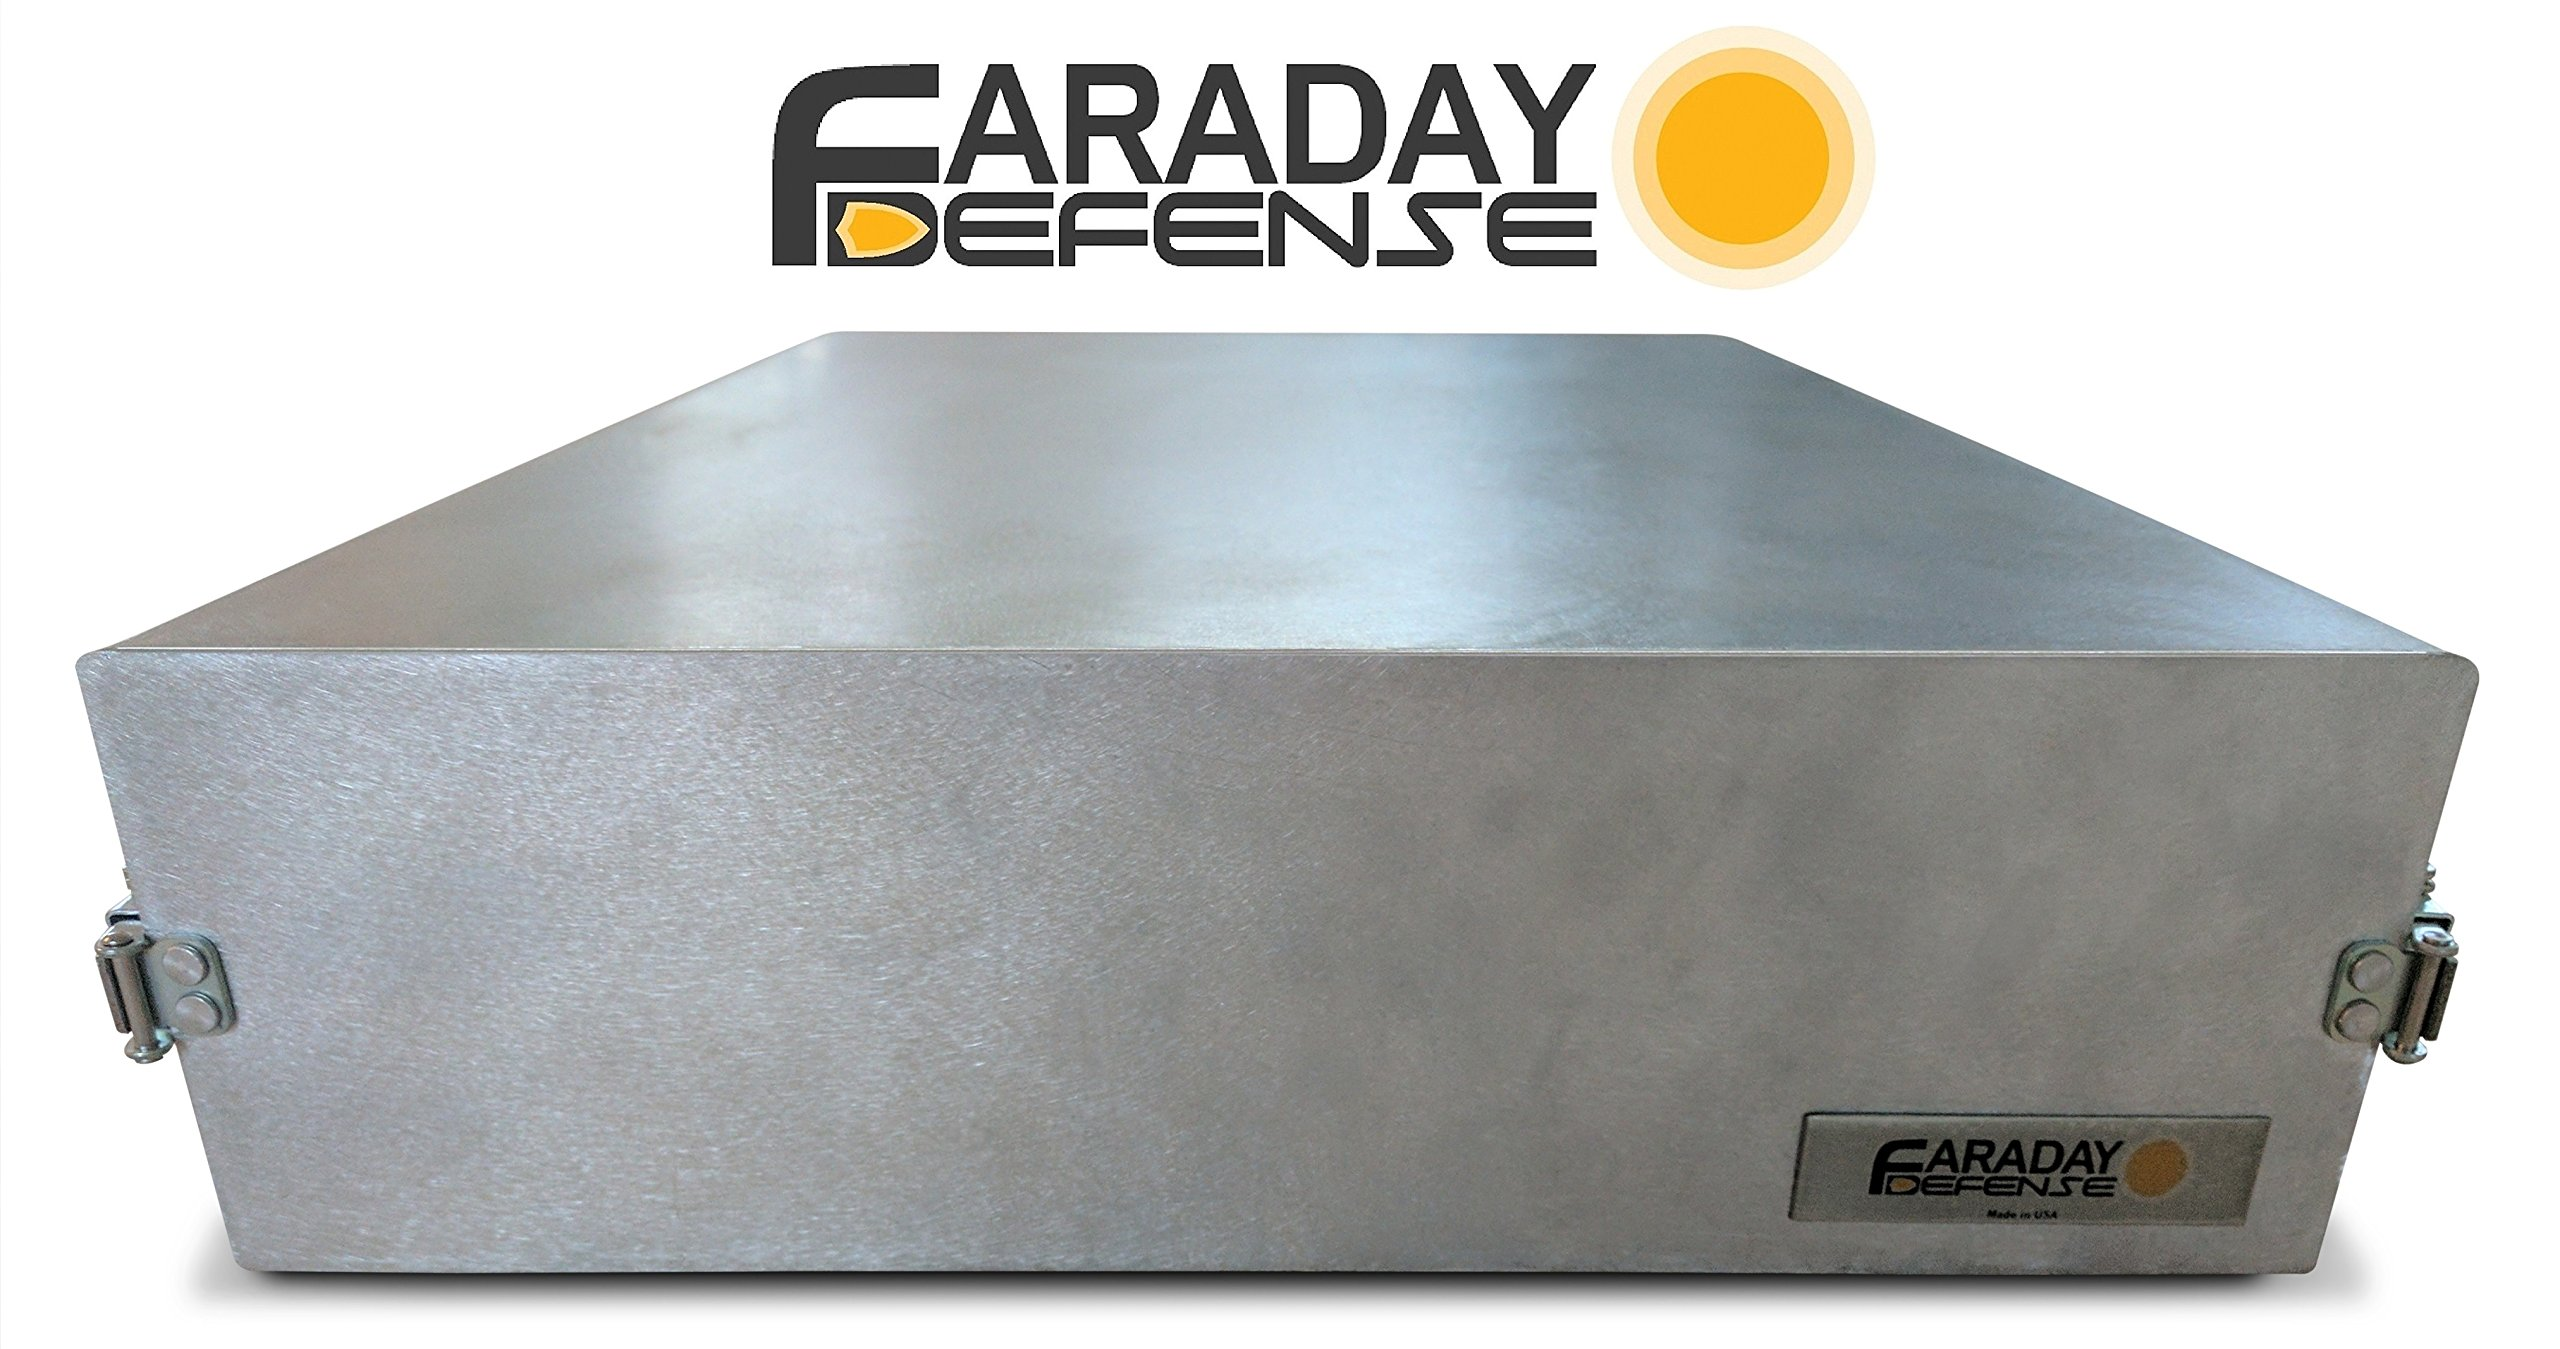 Faraday Defense - Solid Metal Faraday Cage, Bug Out Box, EMP Protection, Solar Flare, RF RFID Blocking